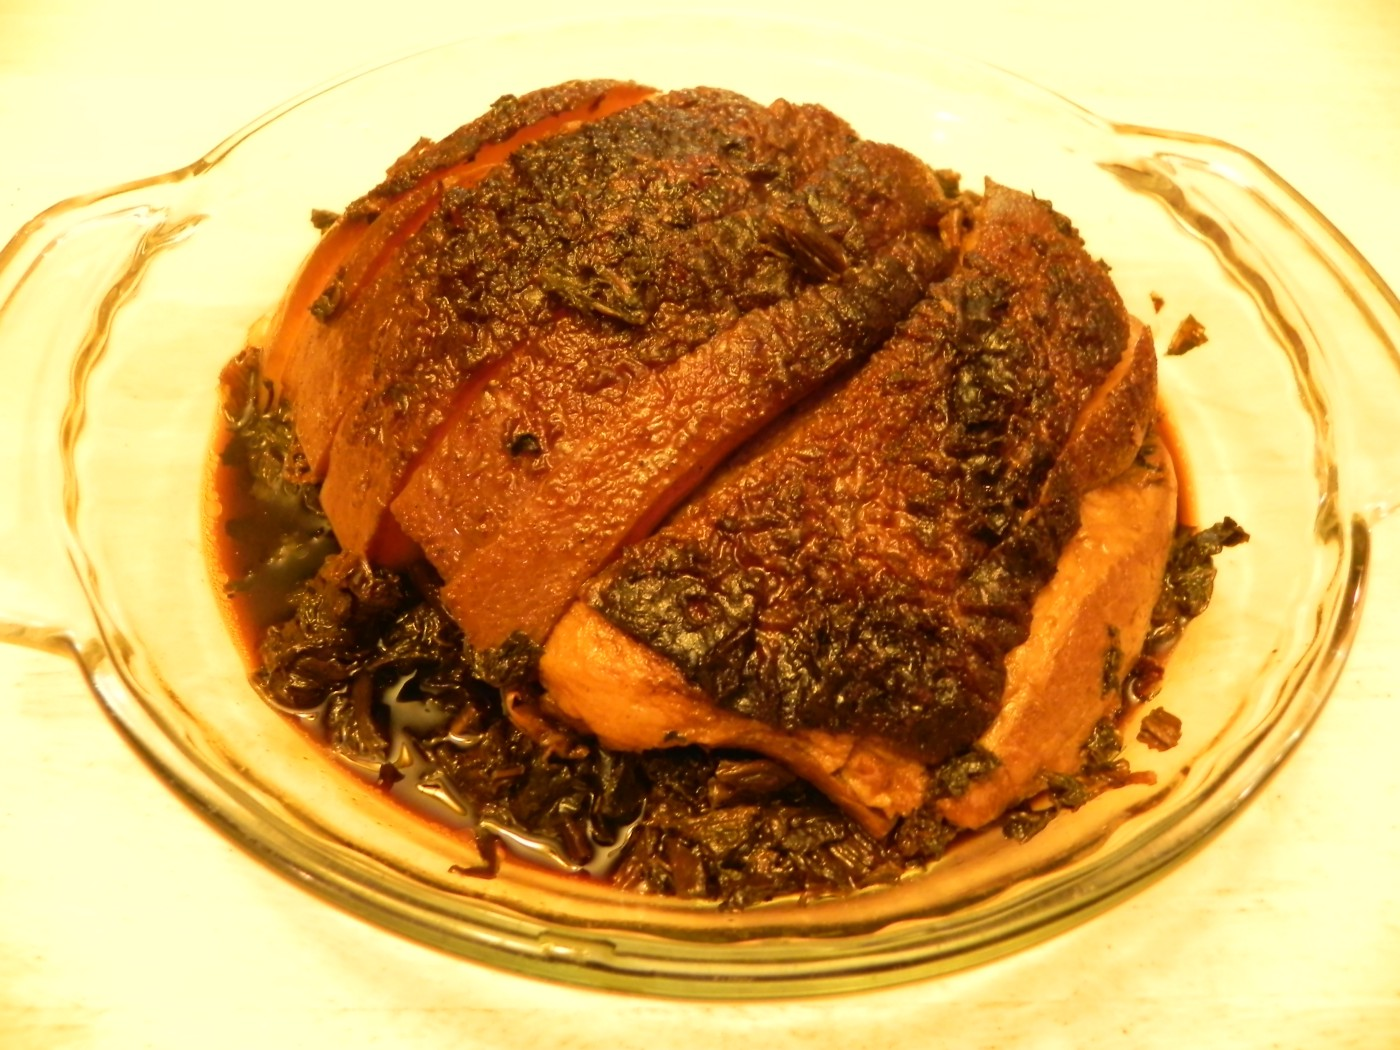 Roasted pork belly with dried vegetables sits on a glass plate